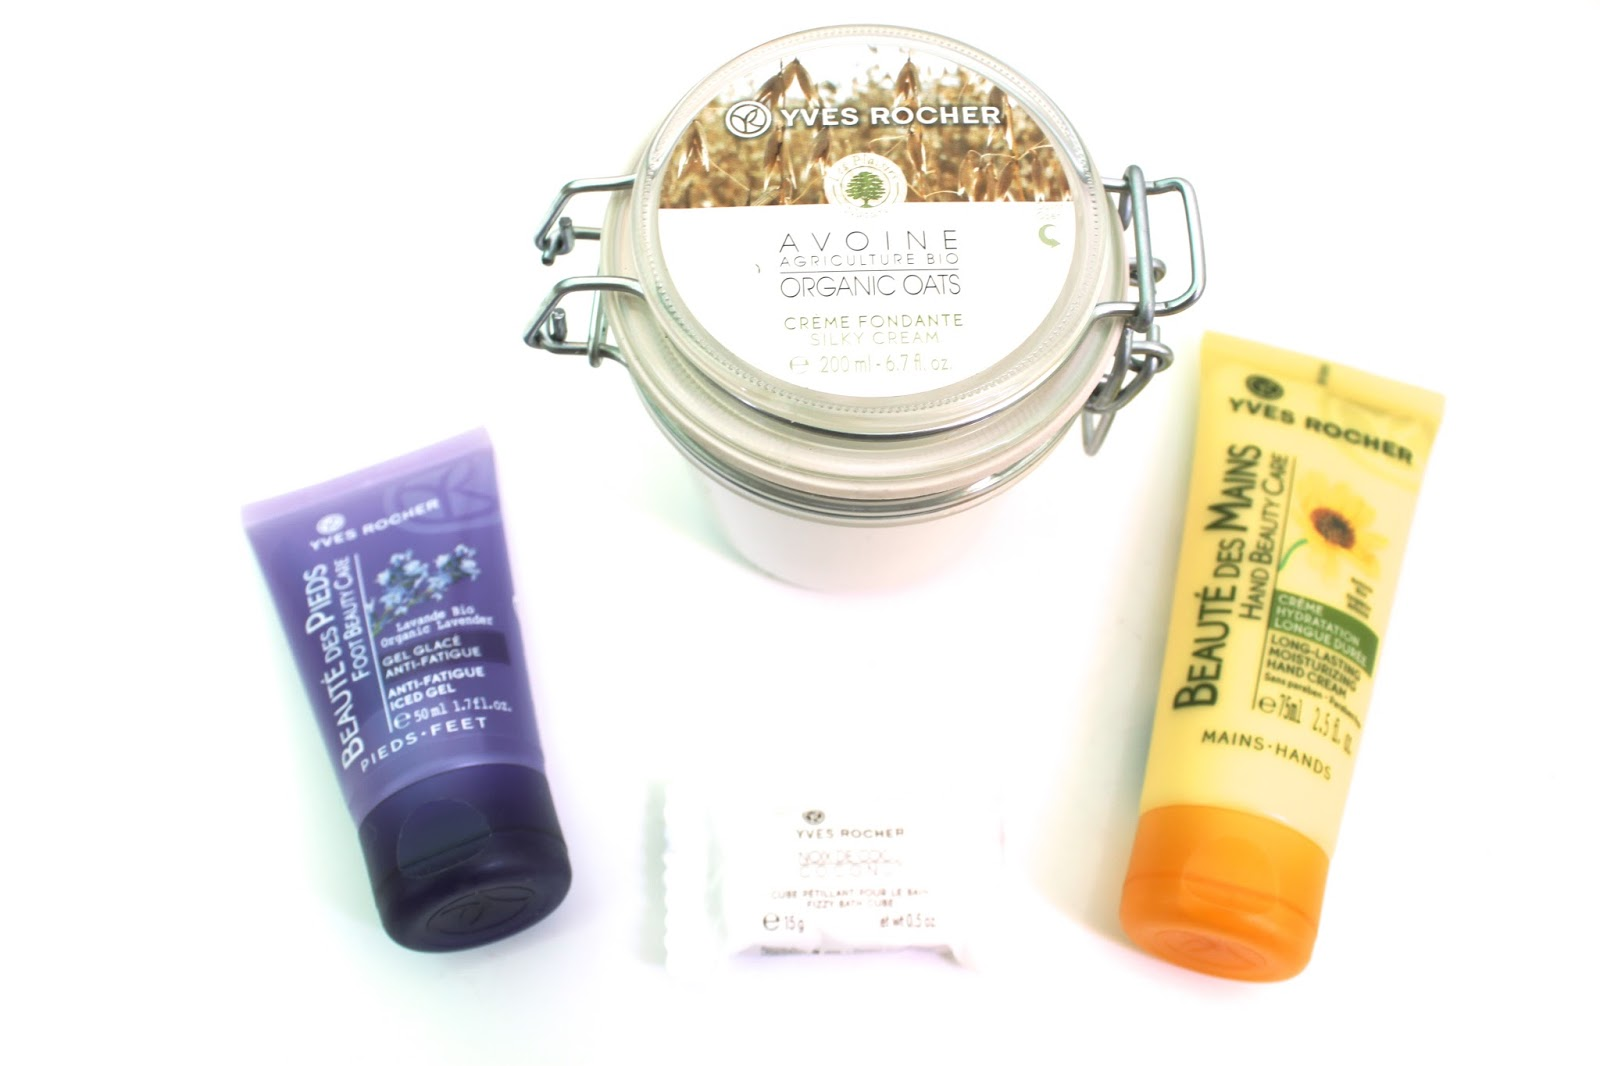 The Giveaway - by Yves Rocher